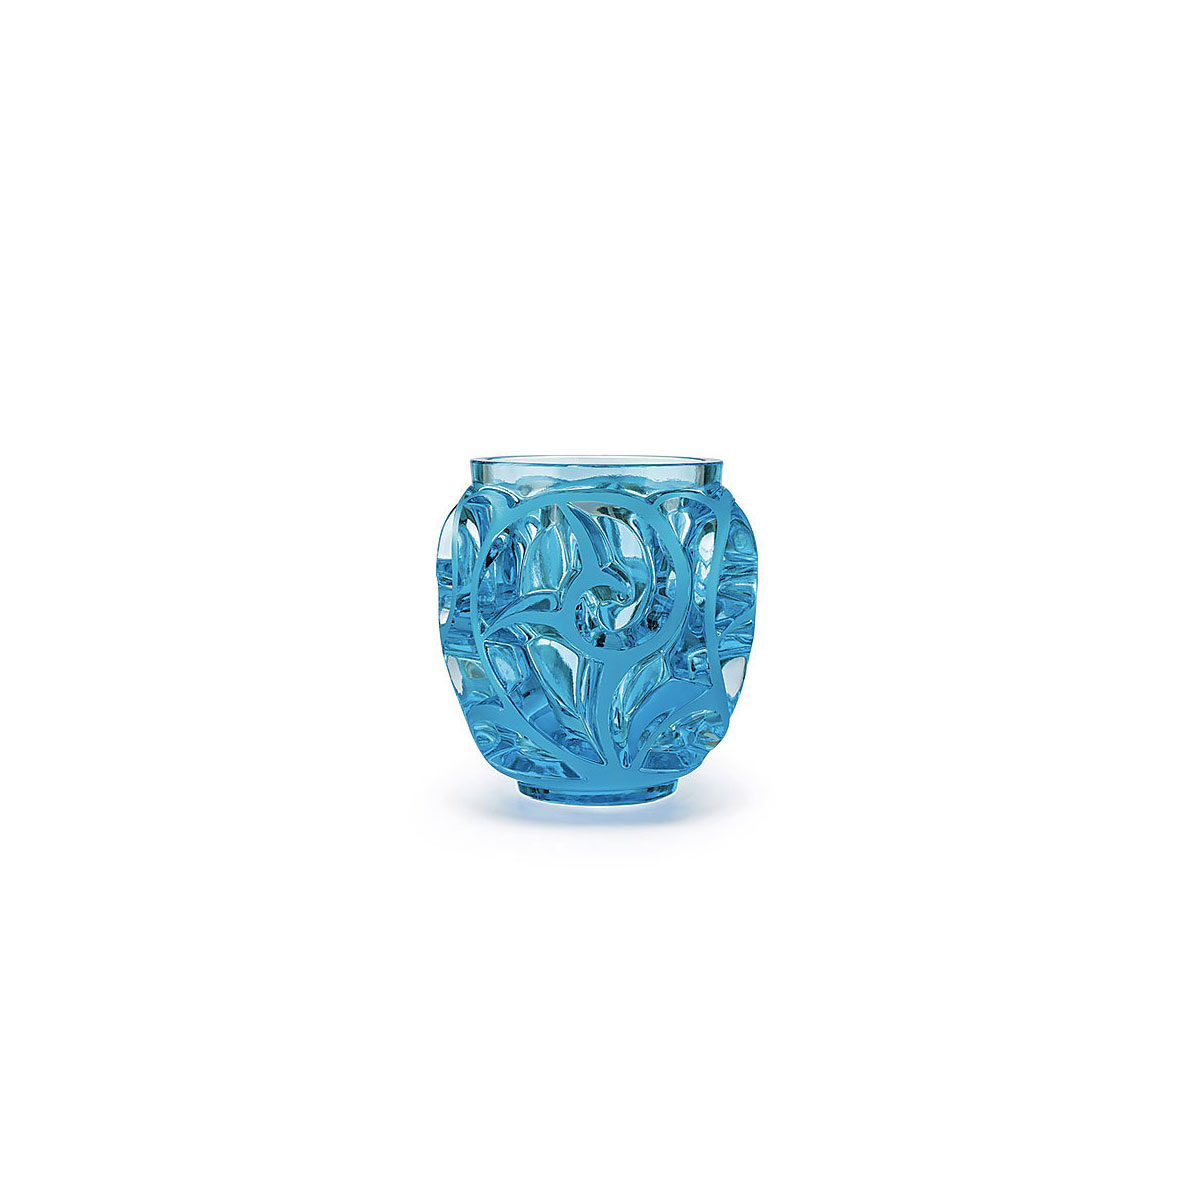 Lalique Crystal, Tourbillons Small Crystal Vase, Pale Blue